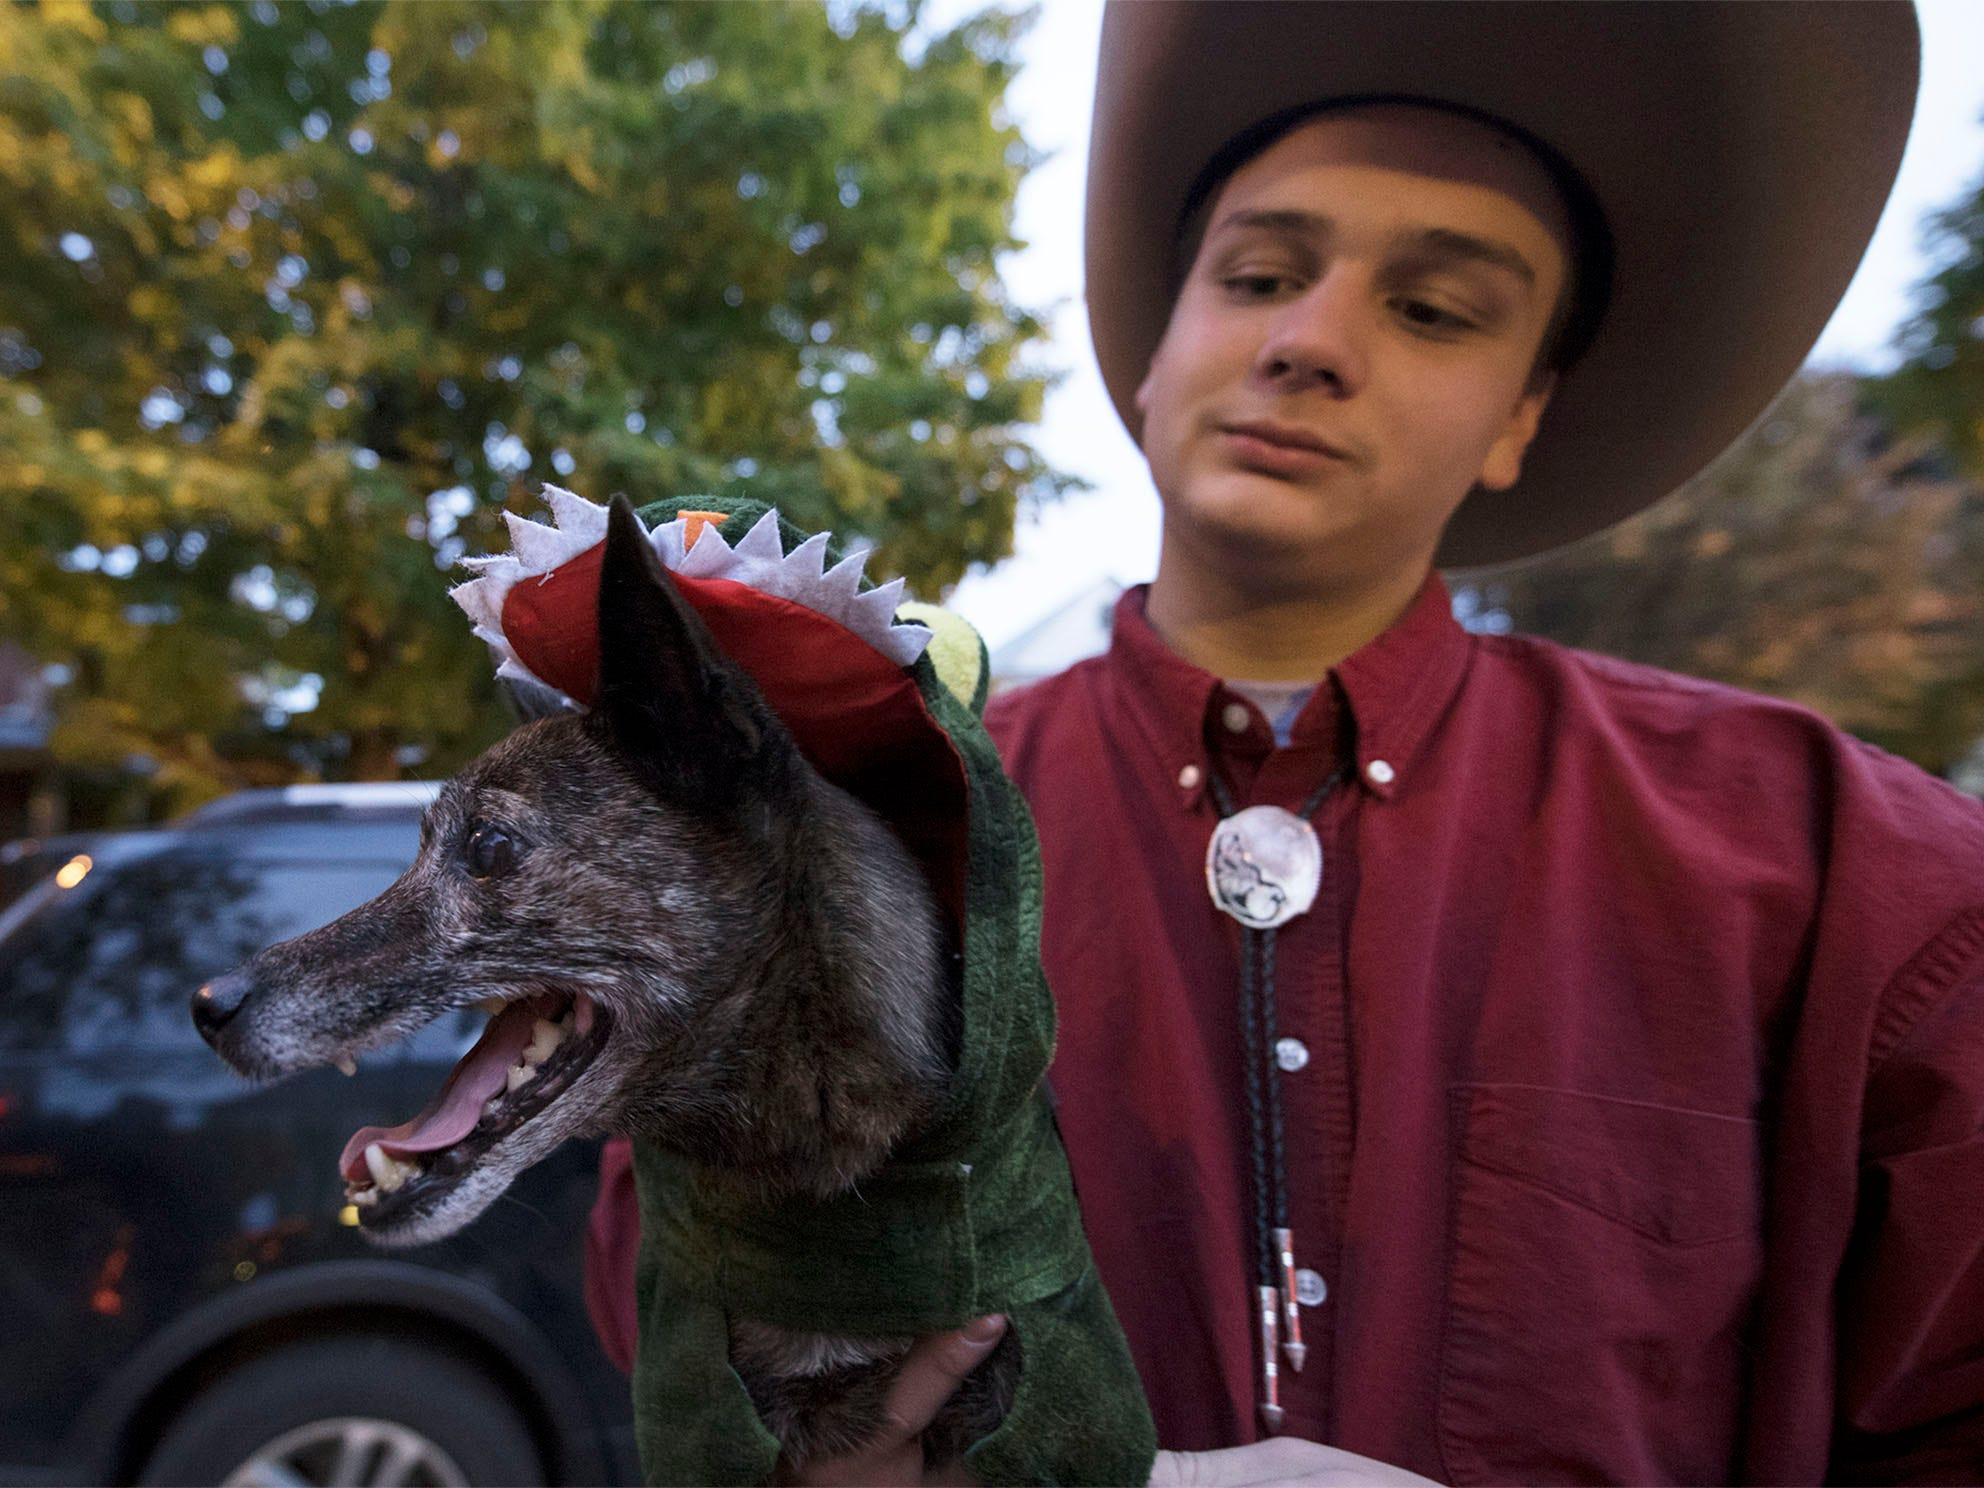 Andrew Prince's dog, Darcy, wears the croc costume. Bob and Sarah Prince hosted their annual Halloween Haunted House at 47 Fifth Avenue, Chambersburg, do the delight of trick-or-treaters.